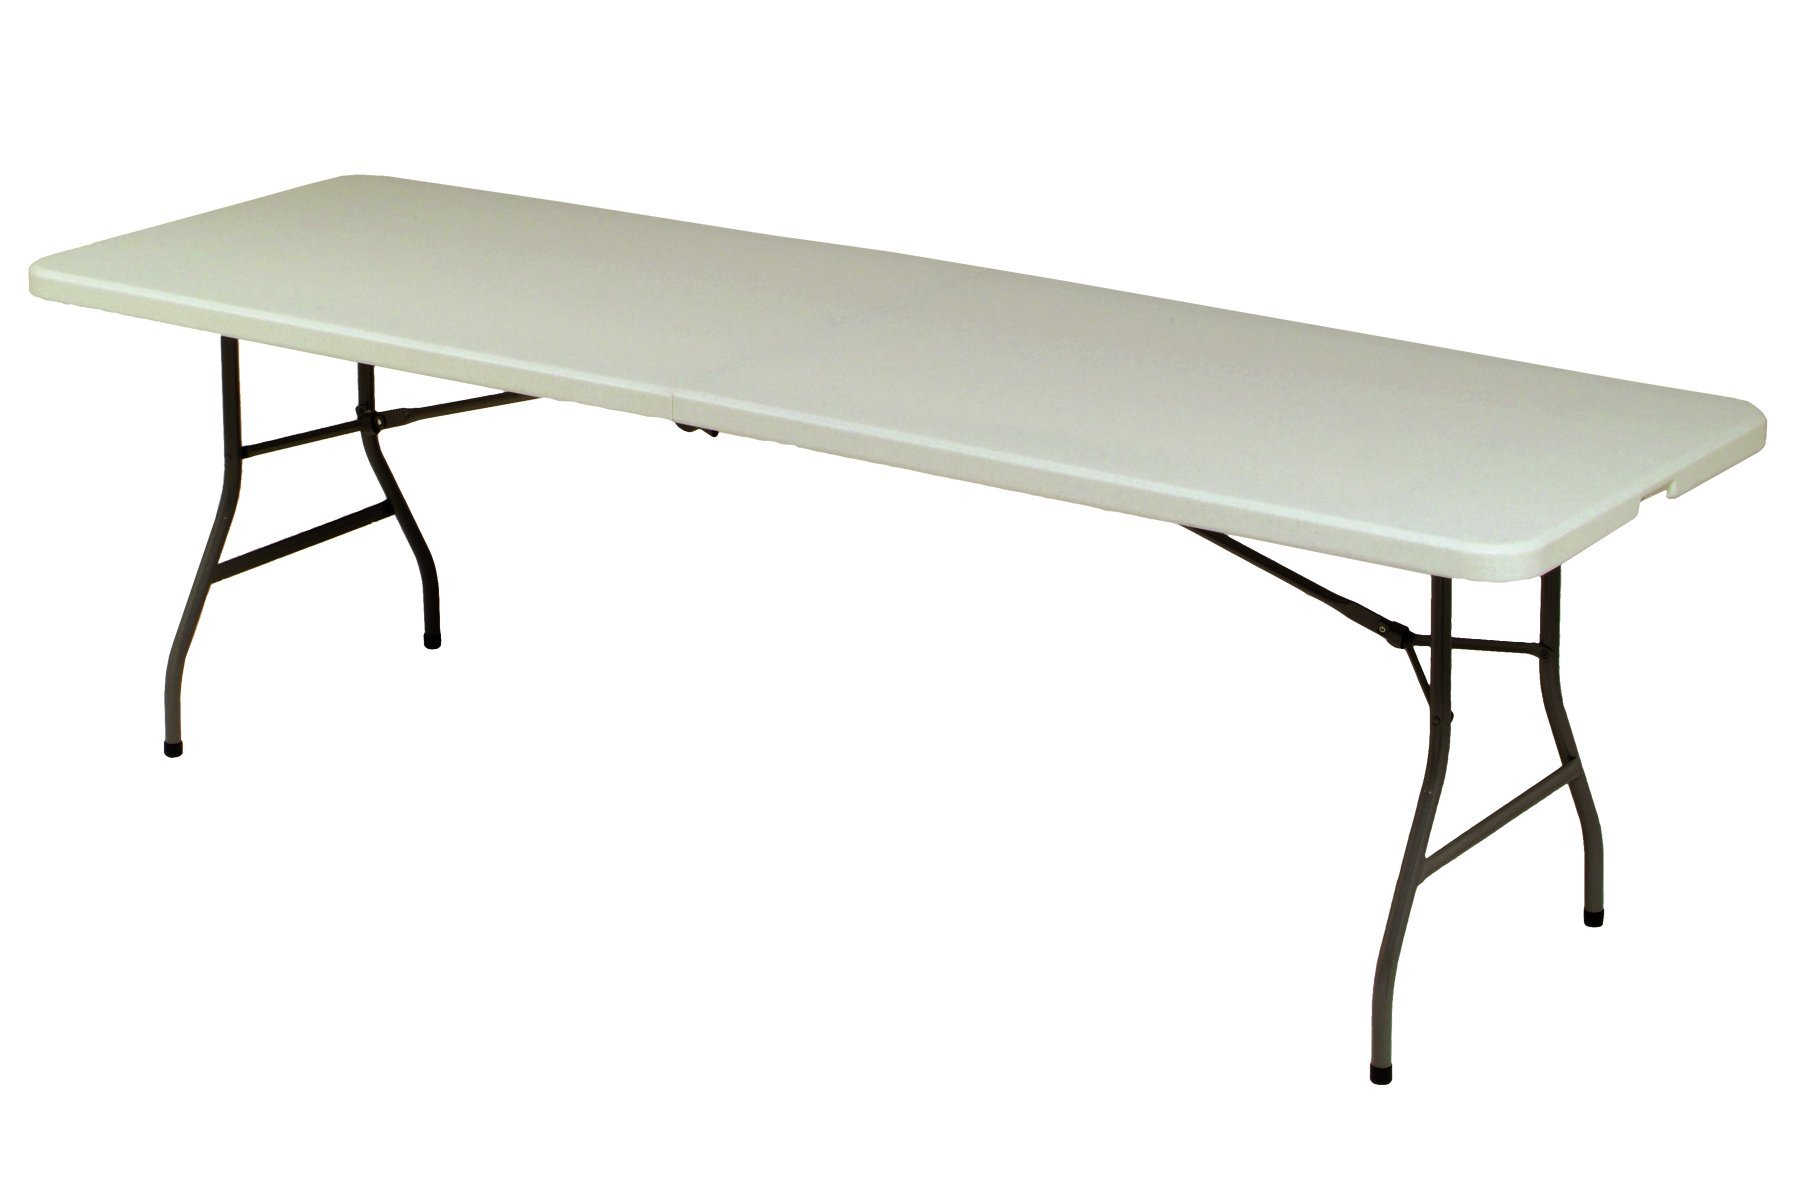 Meco 8-Feet Folding Table, Mocha Metal Frame and Cream Plastic Top